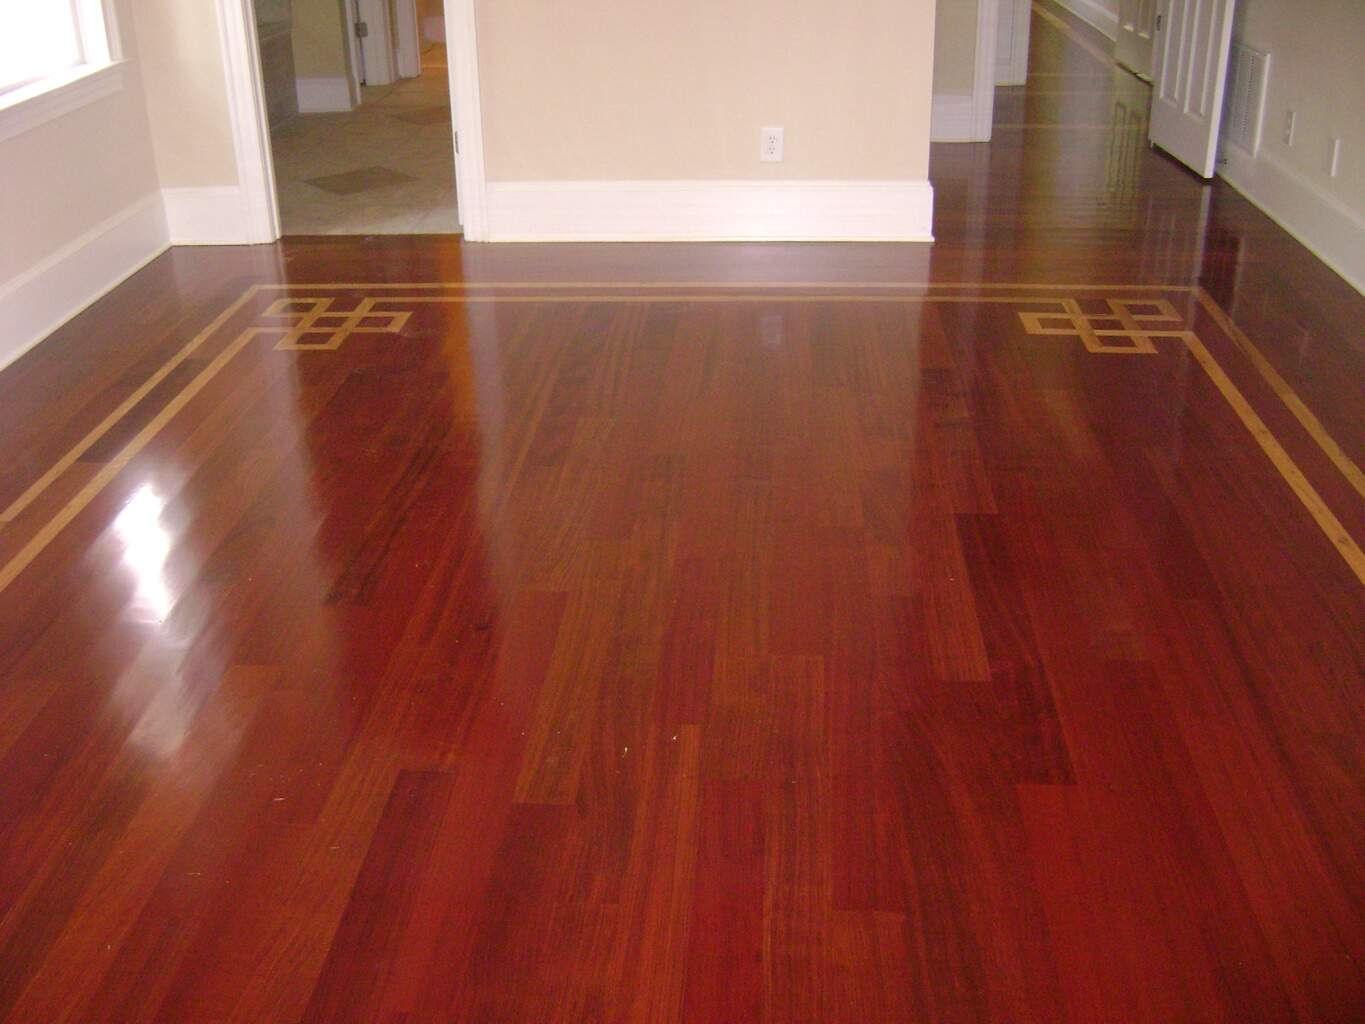 Wood floor inlay long island ny refinish restore hardwoods for At floor or on floor